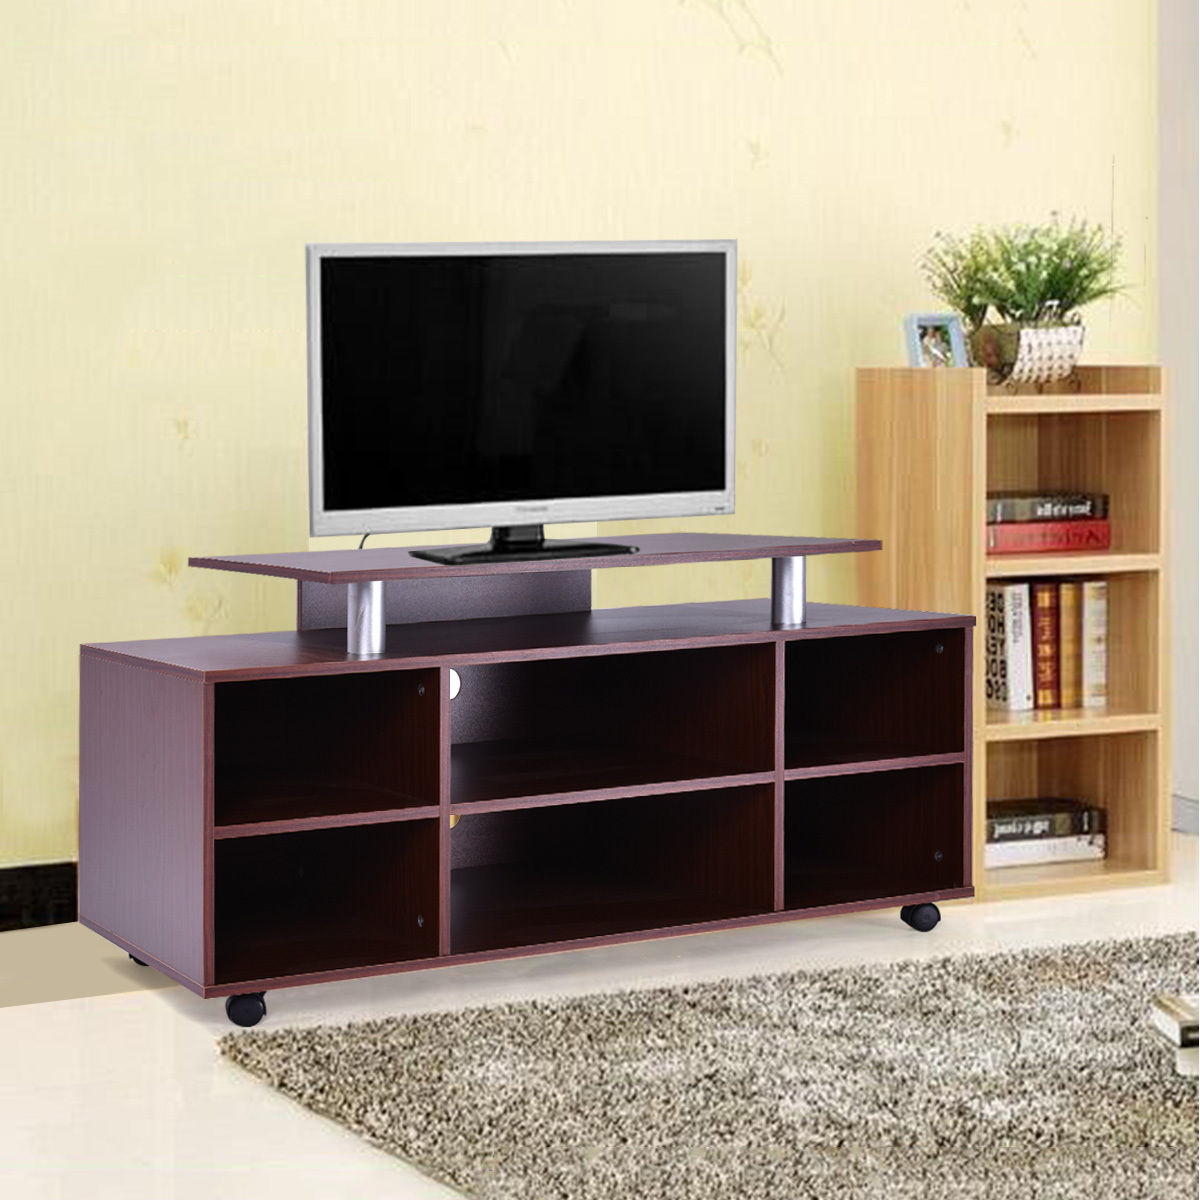 Giantex Wheeled Tv Stand Entertainment Center Media Console Storage Cabinet Modern Living Room Wood Furniture HW52192 giantex modern tv stand wood media console table entertainment with metal hairpin legs tvs up to 42 home furniture hw56640